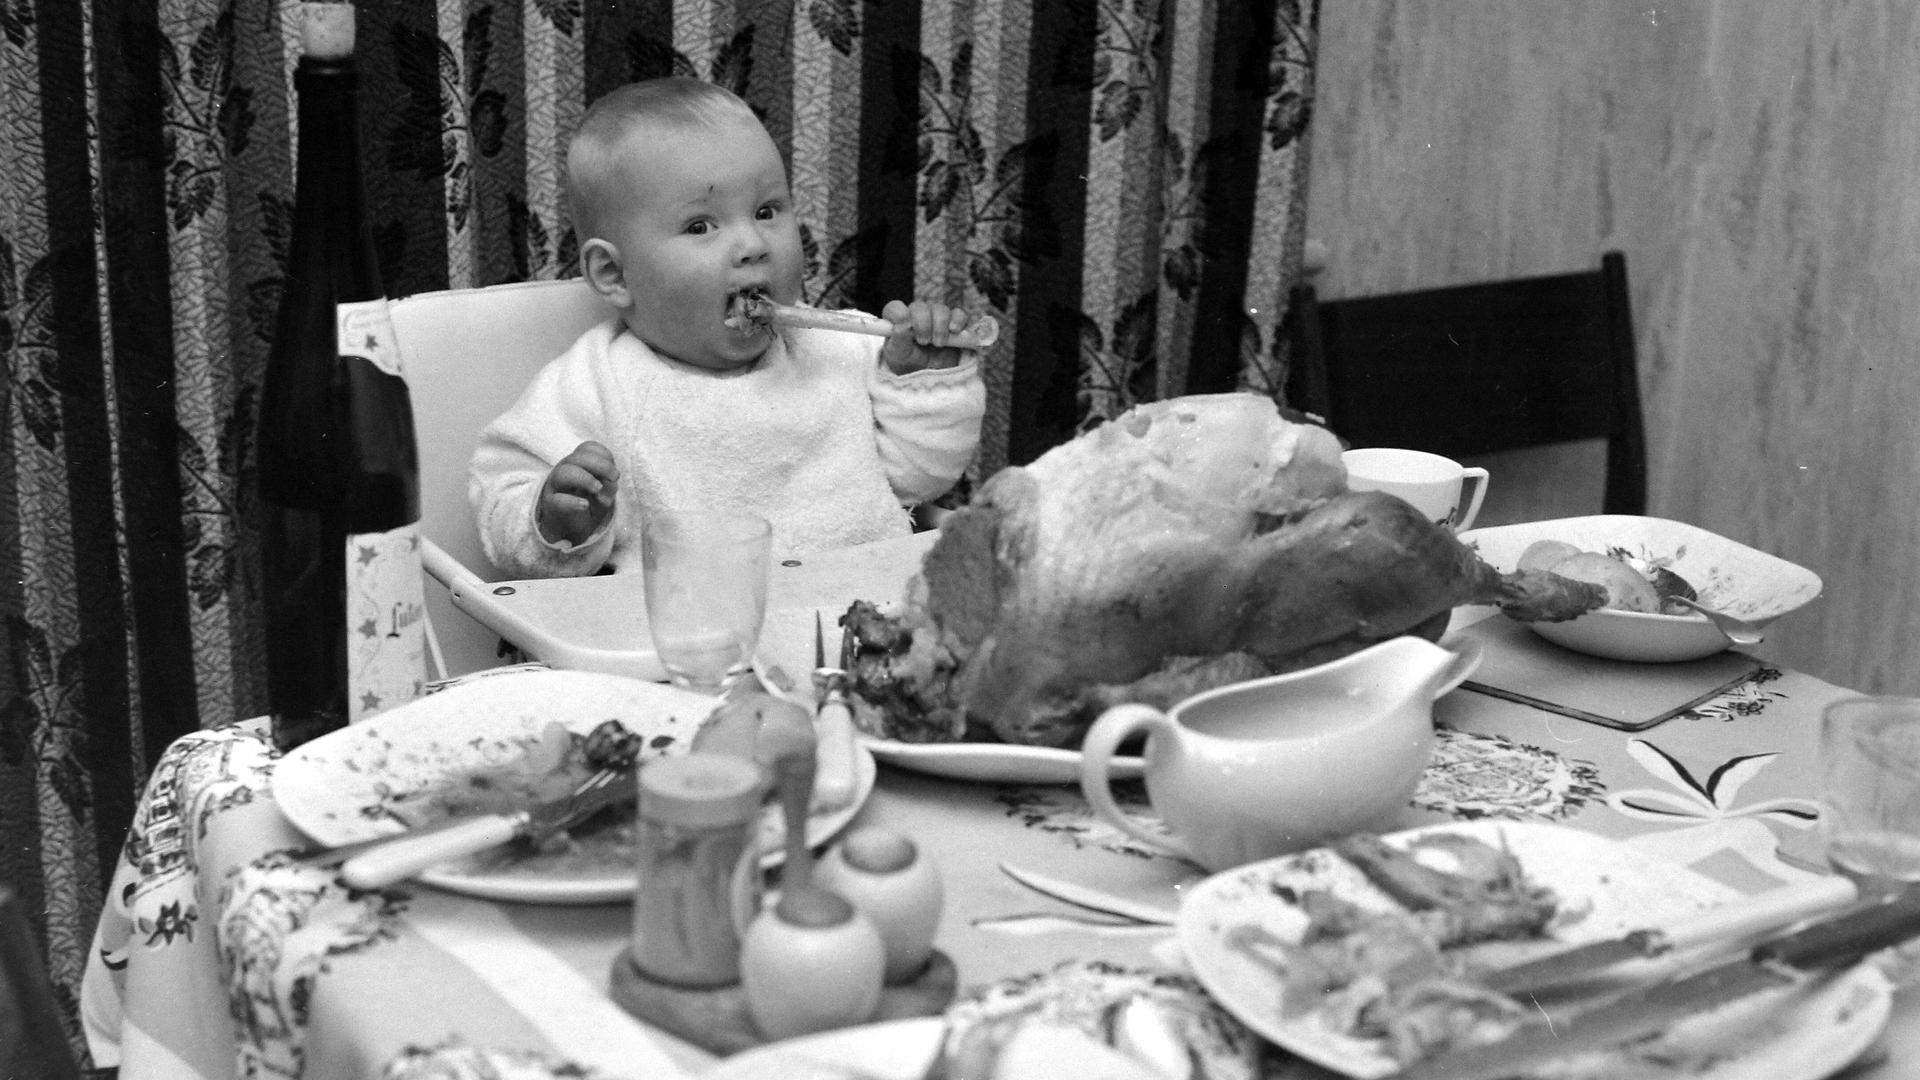 CHILDREN EGGITT TIMOTHY FIRST CHRISTMAS SUCKING TURKEY BONE ; 27 DECEMBER 1964, Copyright: Topfoto PUBLICATIONxINxGERxSUIxAUTxONLY UnitedArchivesIPU490666